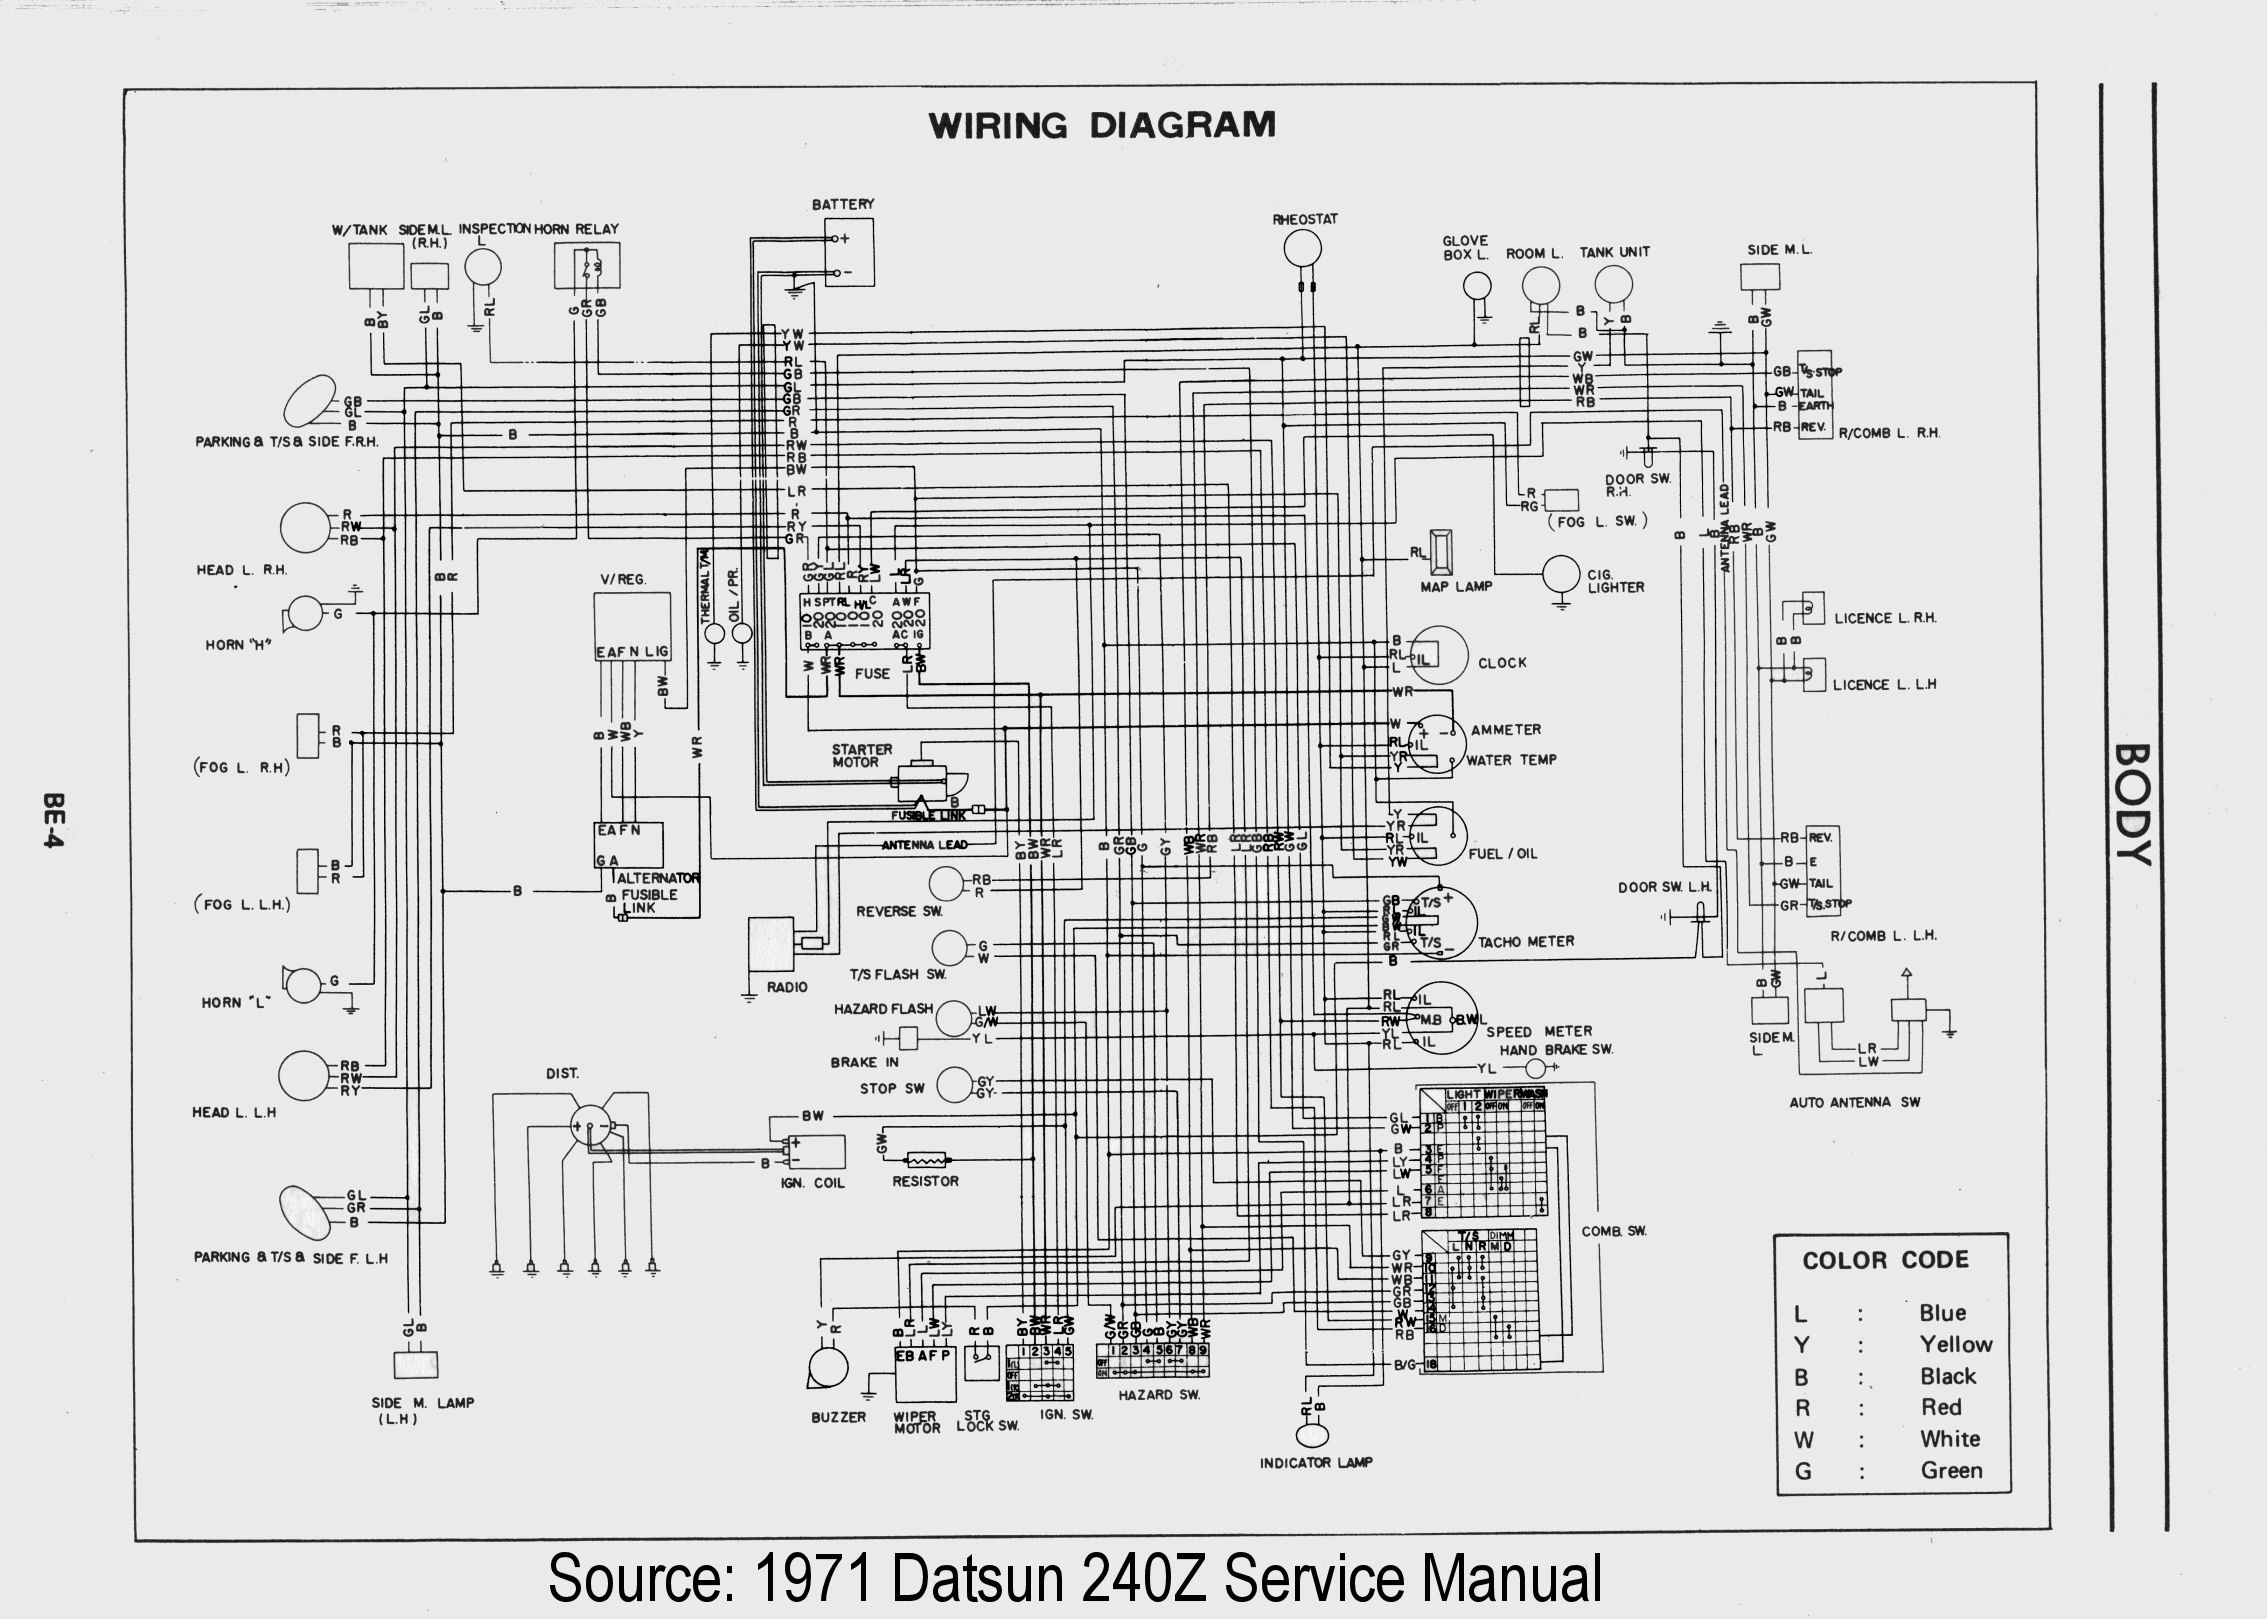 Wiring Diagram HiRes 2 240z wiring diagram 280z wiring diagram \u2022 wiring diagrams j datsun 240z wiring harness at readyjetset.co